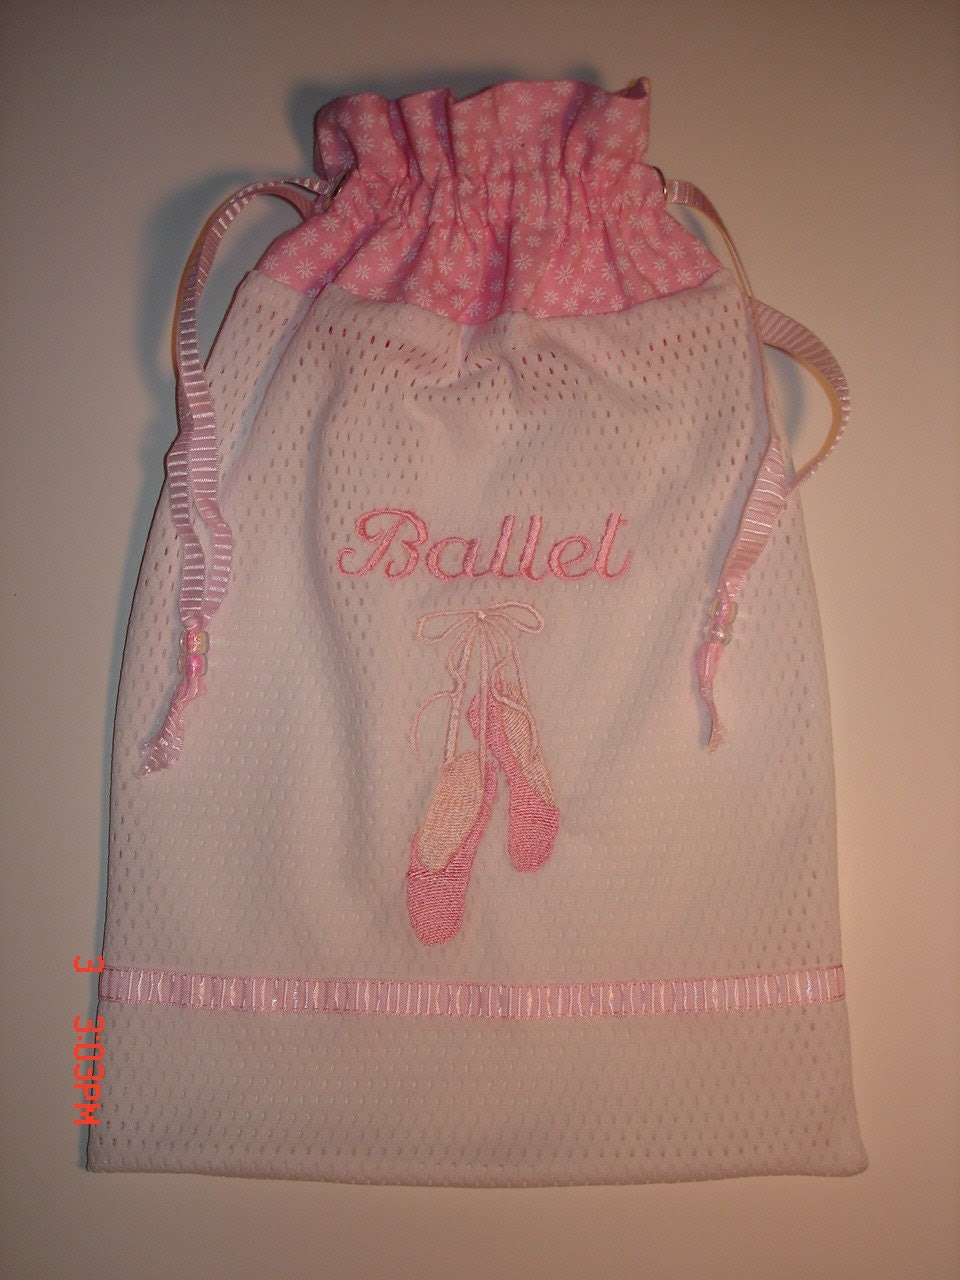 "Mesh pointe/ballet dance shoe bag with embroidered pointe shoes and the word ""Ballet"" also embroidered on the bag"